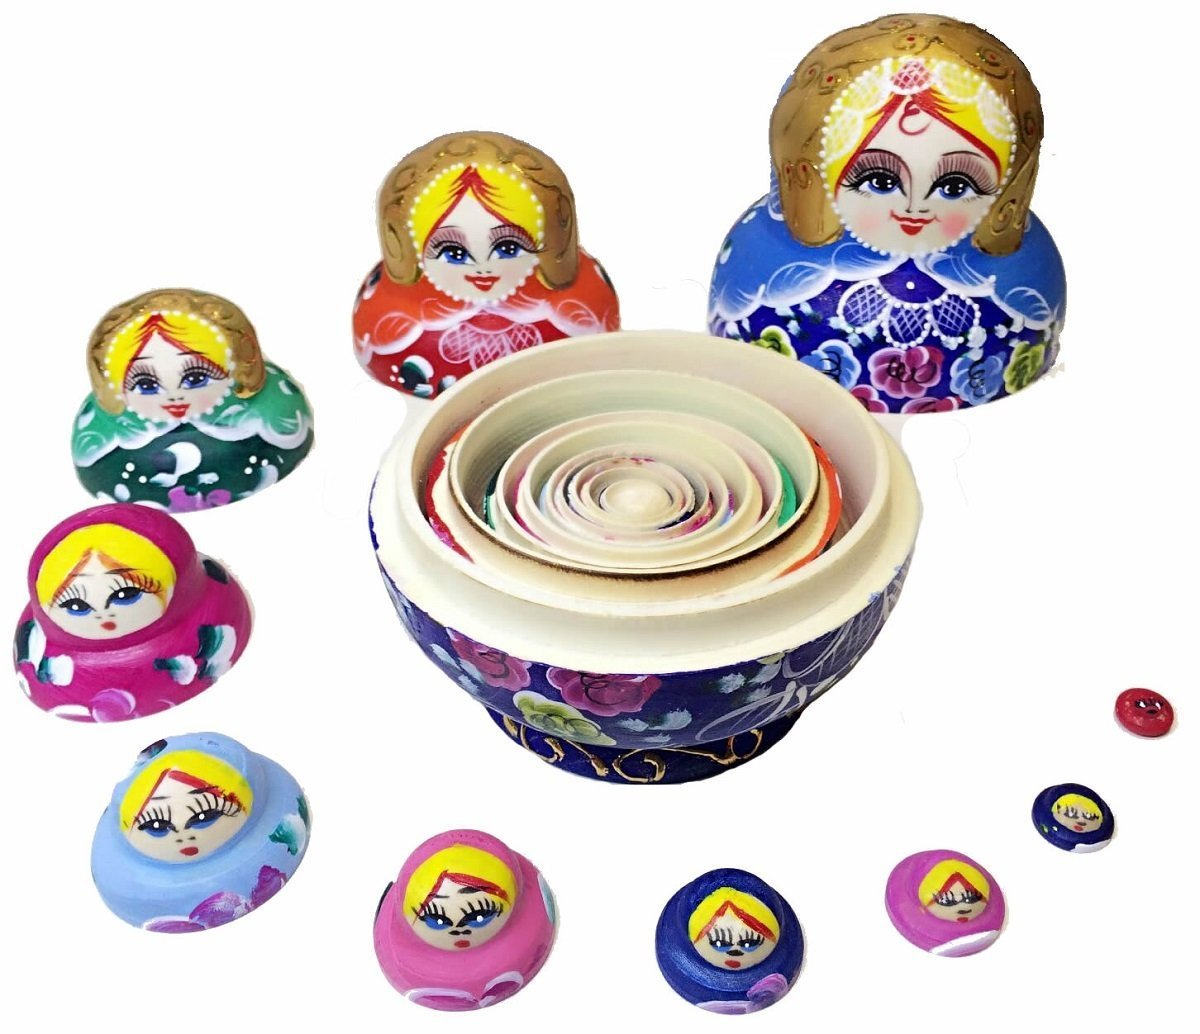 King&Light - 10pcs Peony Multicolor Russian Nesting Dolls Matryoshka Toys by K&L by LK (Image #5)